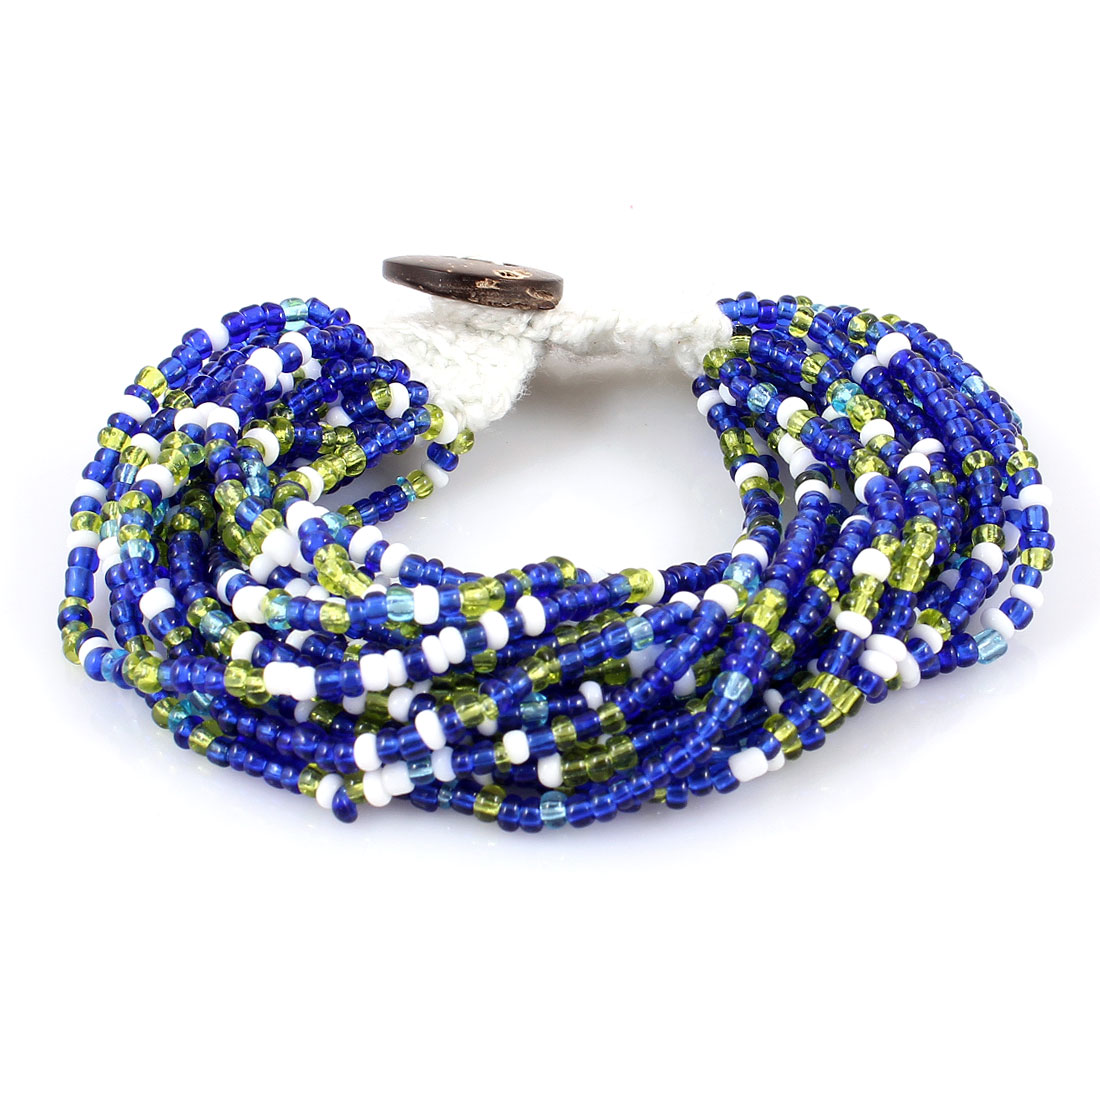 Multilayers String Braided Colorful Beads Button Closure Wrist Bracelet Bangle